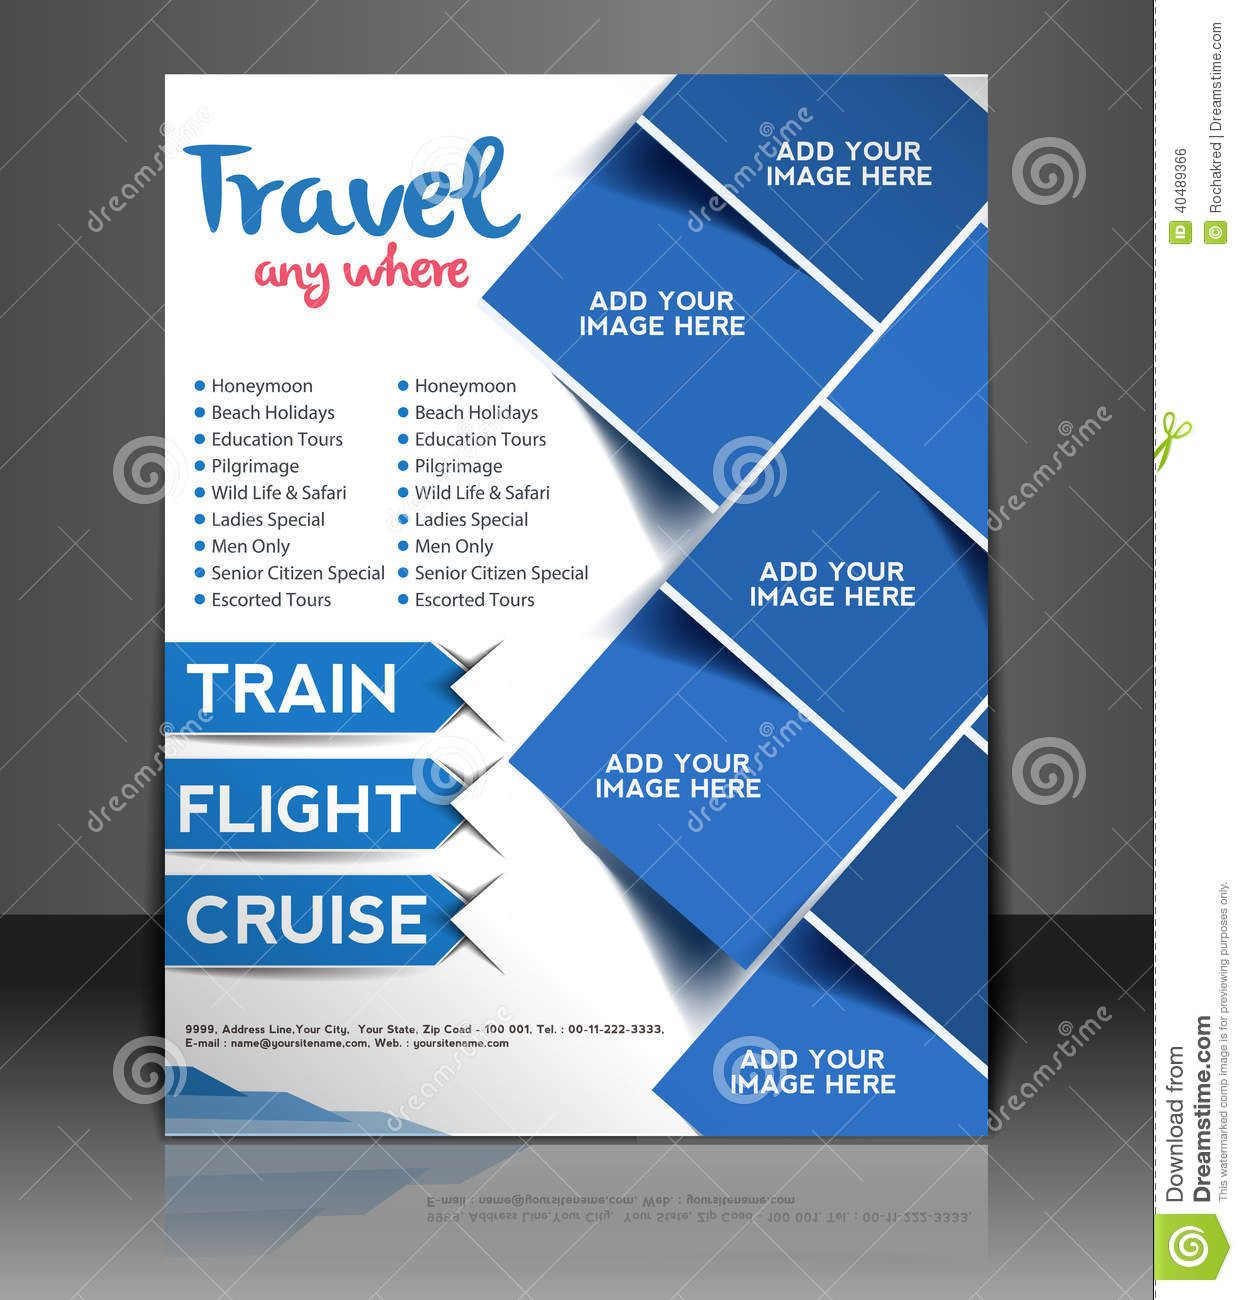 Poster design download - Travel Center Flyer Design Download From Over 36 Million High Quality Stock Photos Images